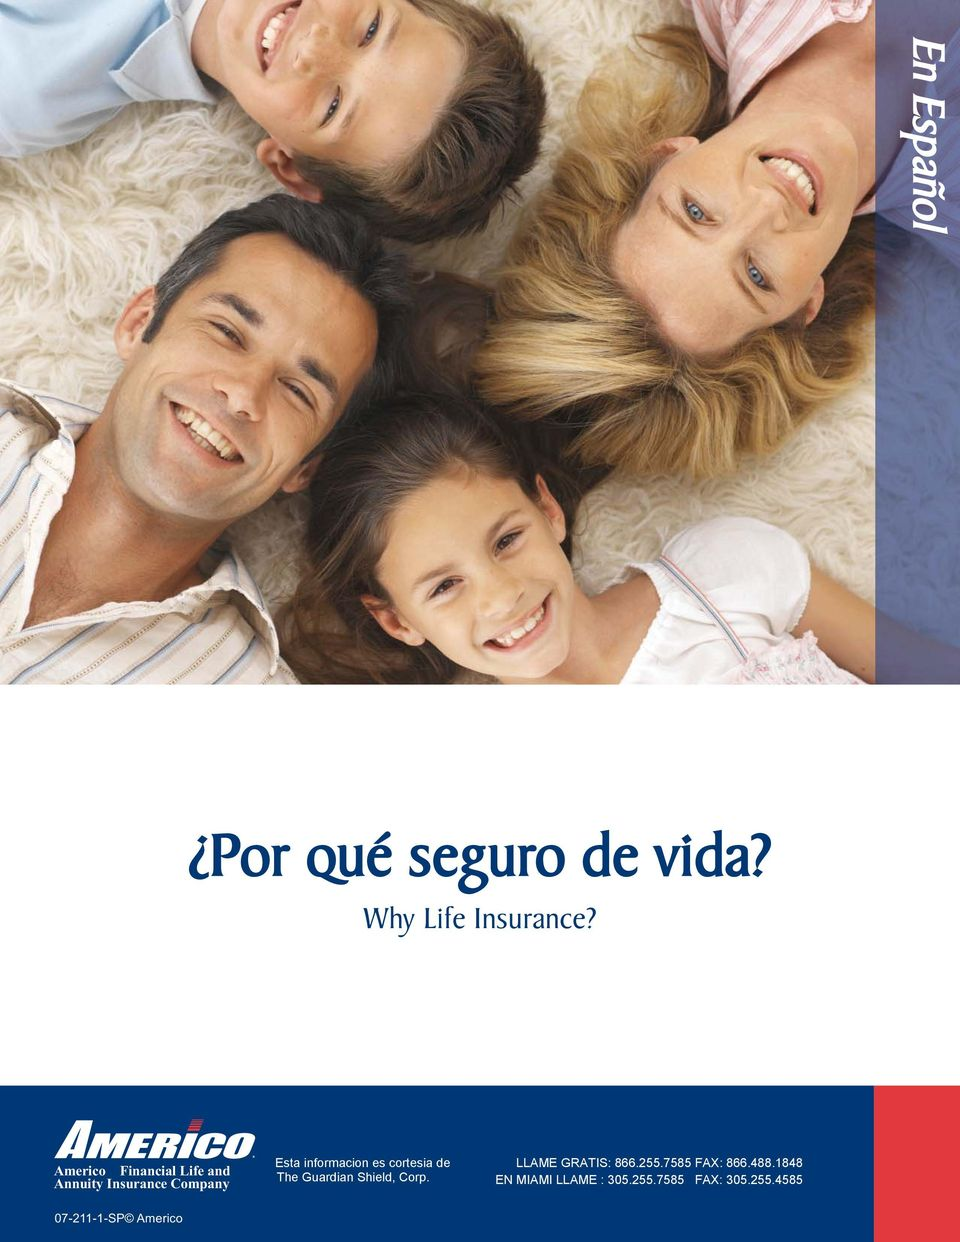 Americo Financial Life and